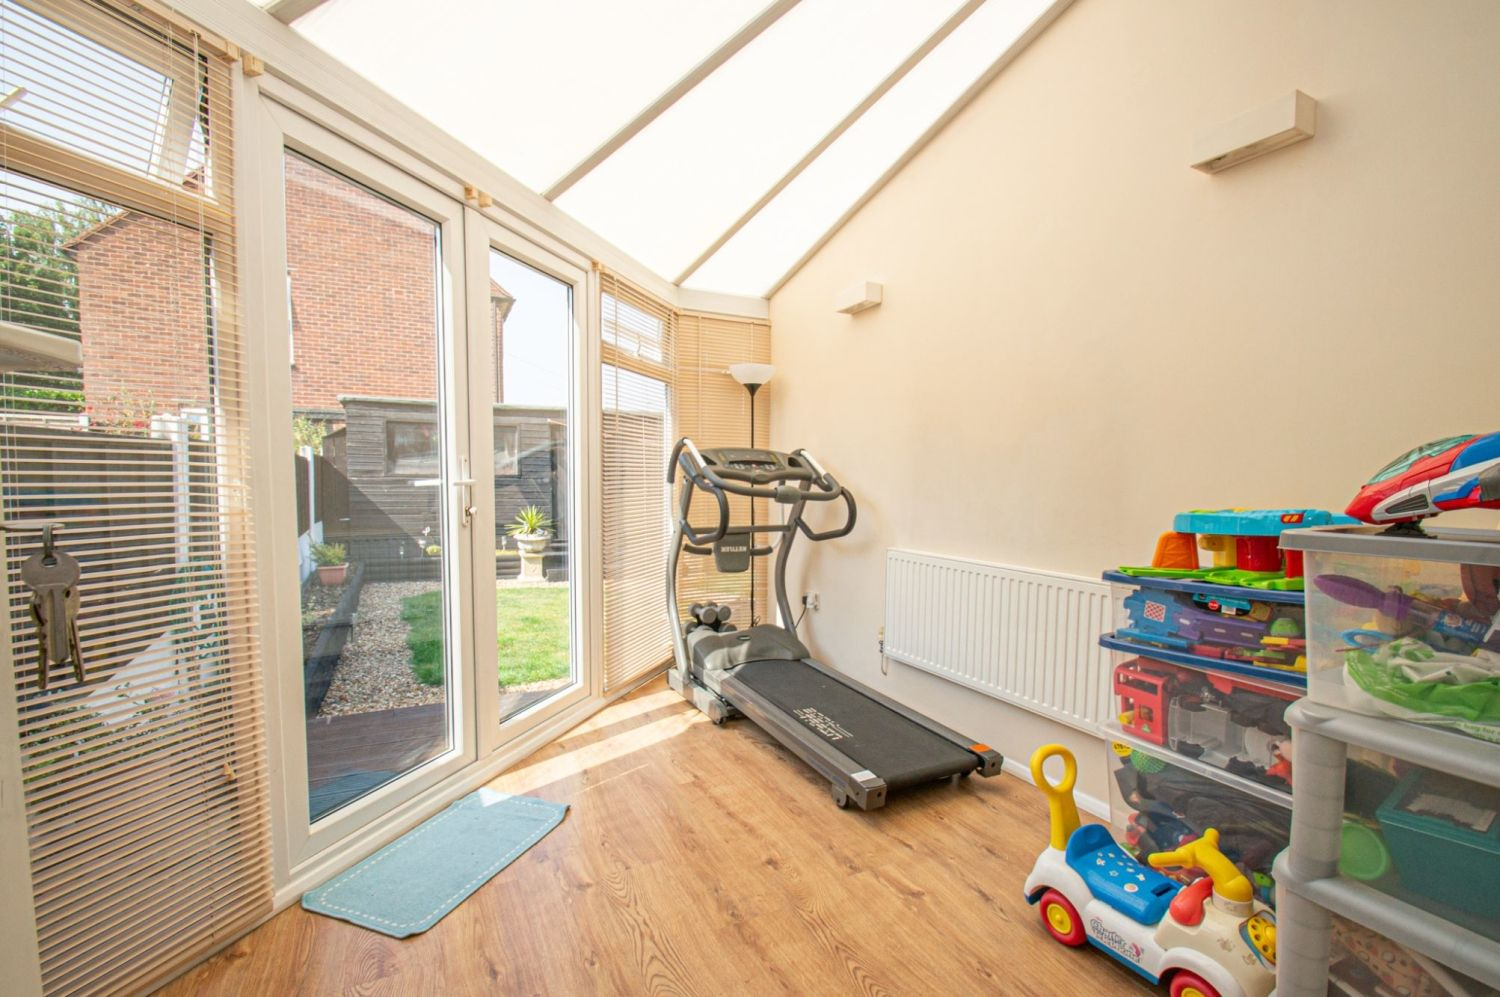 4 bed semi-detached for sale in Oak Street, Kingswinford 5